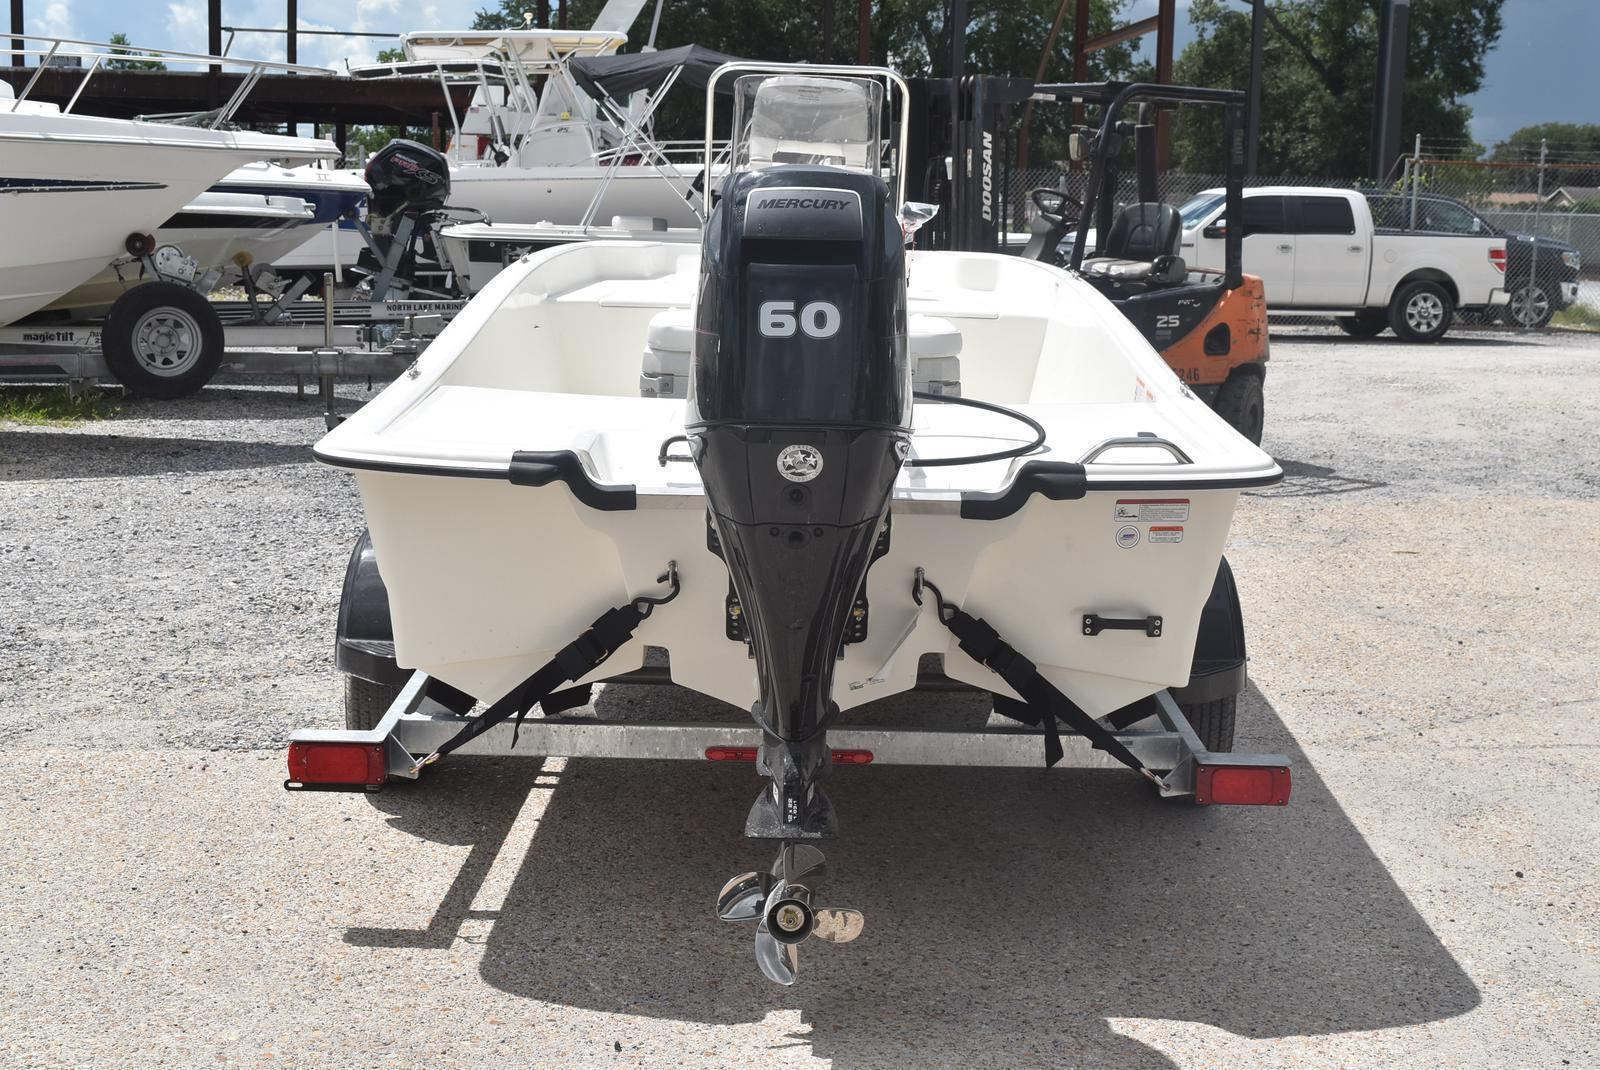 2020 Mako boat for sale, model of the boat is Pro Skiff 17, 75 ELPT & Image # 585 of 702